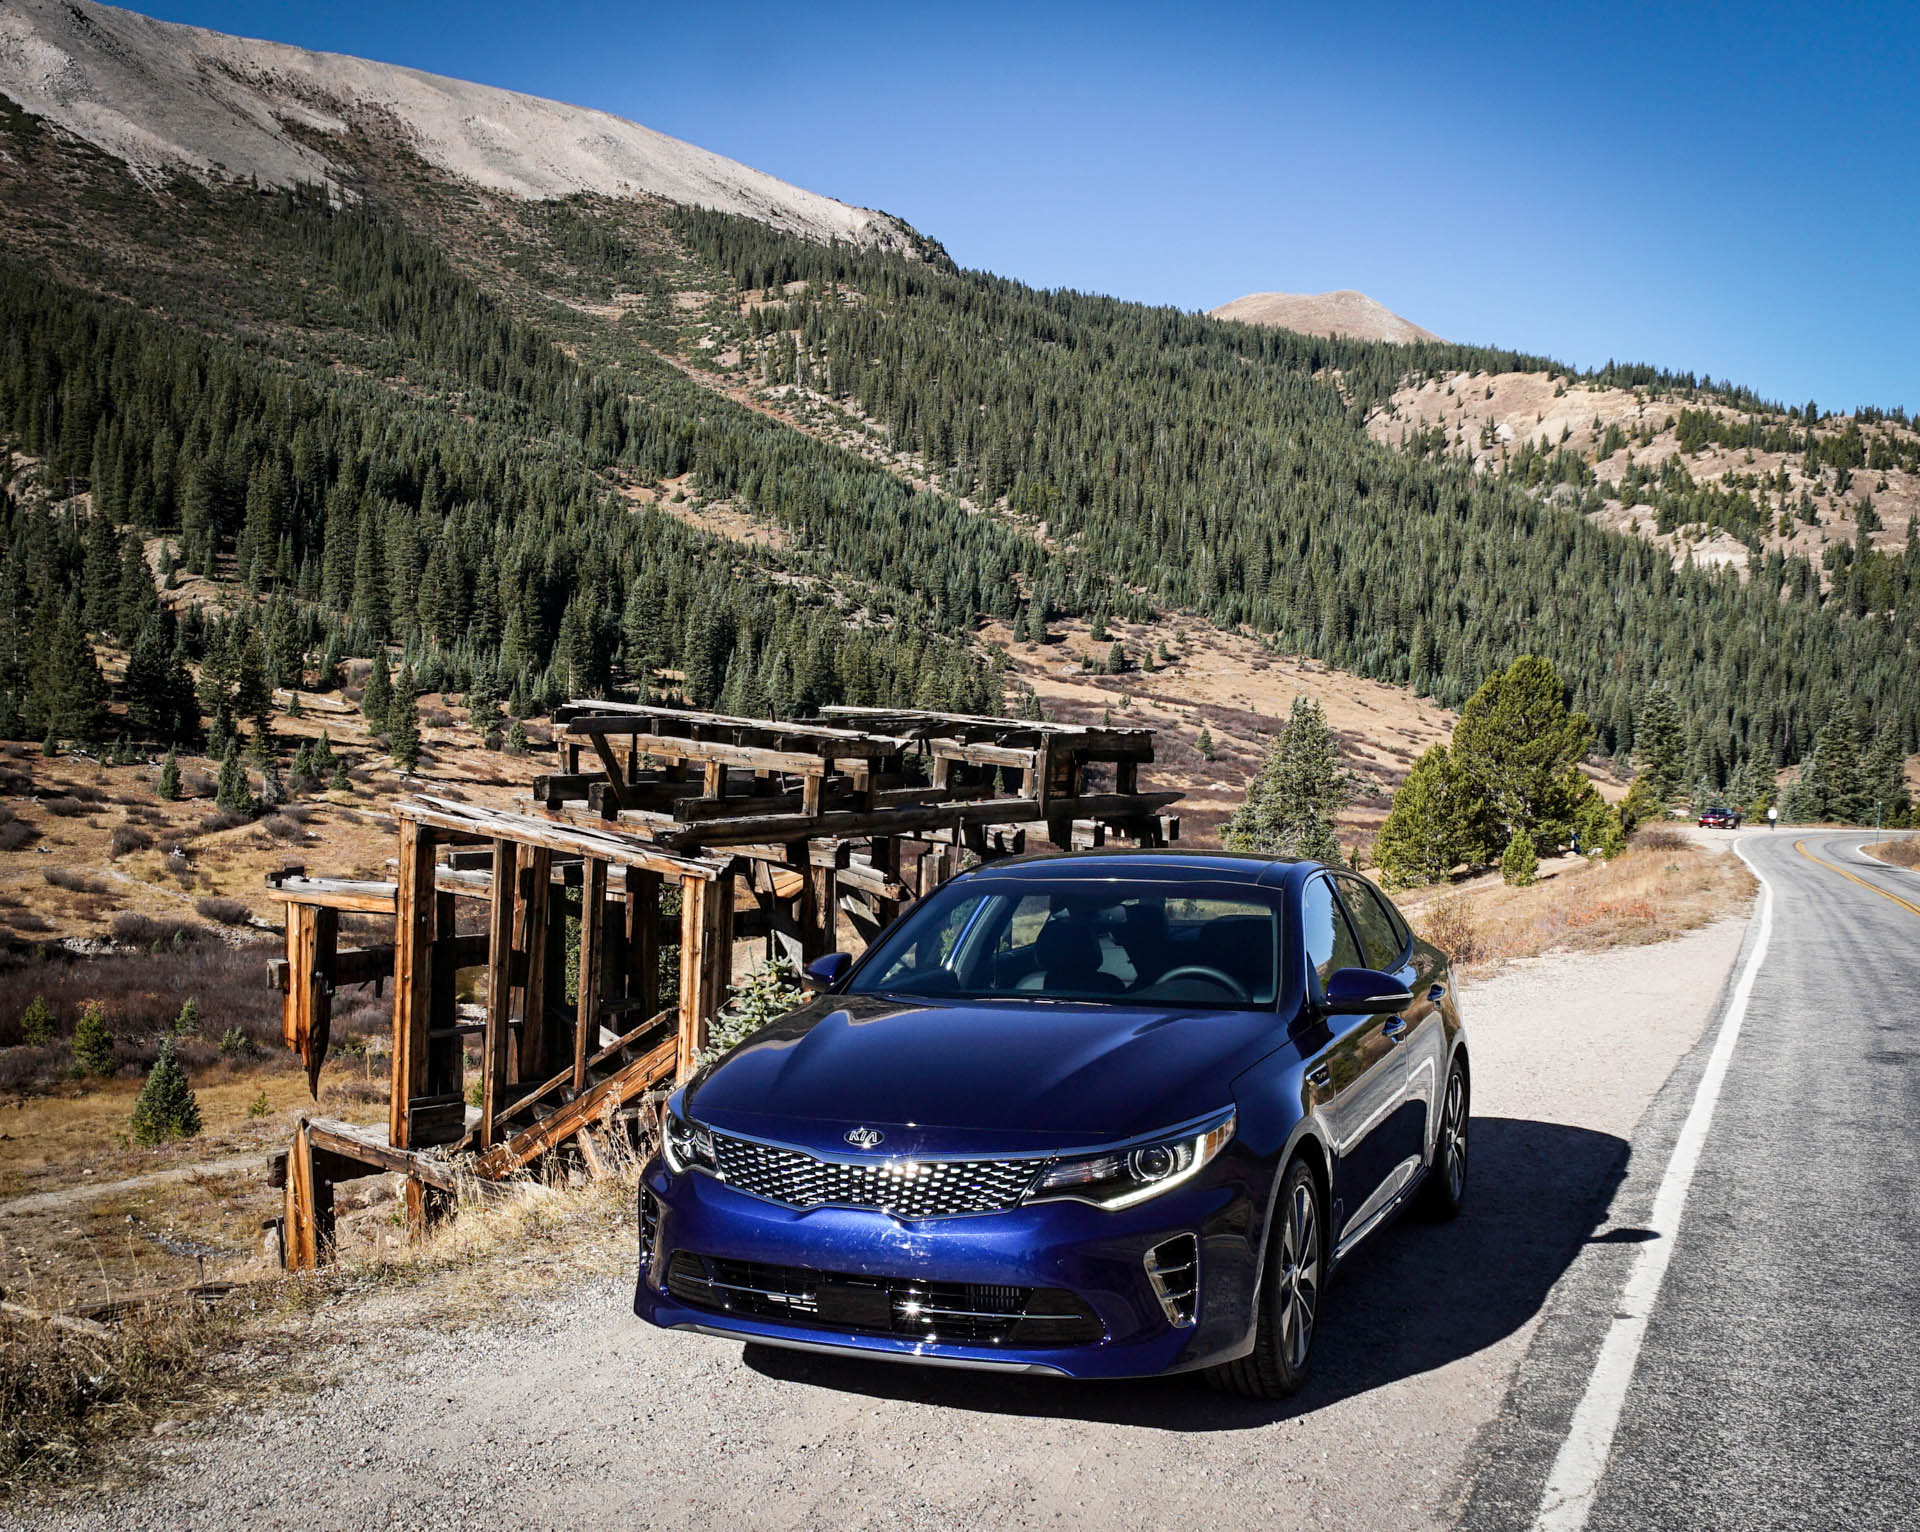 First Drive Review: 2016 Kia Optima SXL 2.0T